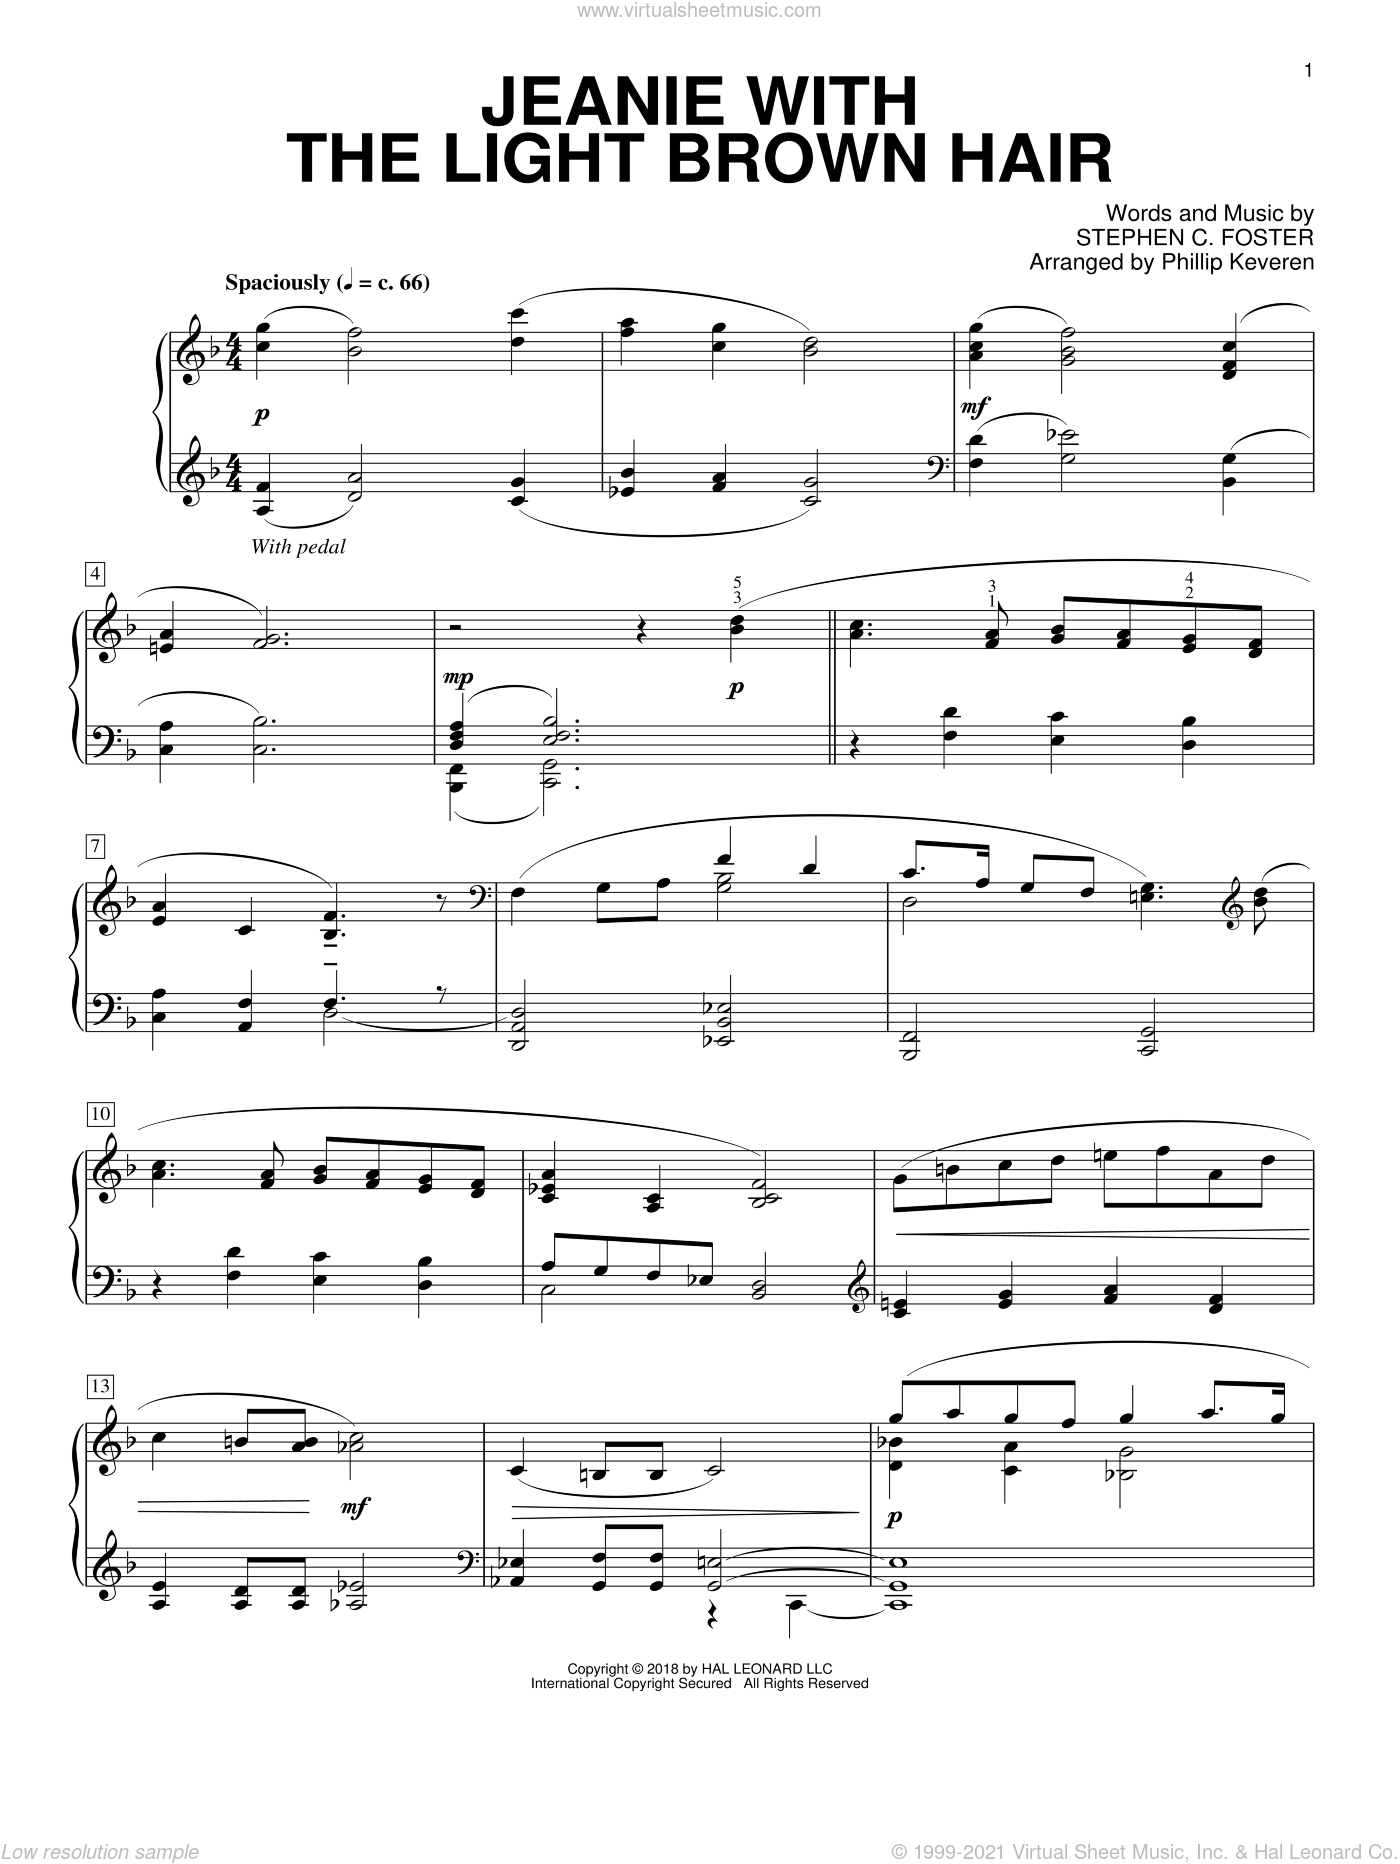 Jeanie With The Light Brown Hair [Classical version] (arr. Phillip Keveren) sheet music for piano solo by Stephen Foster and Phillip Keveren, intermediate skill level